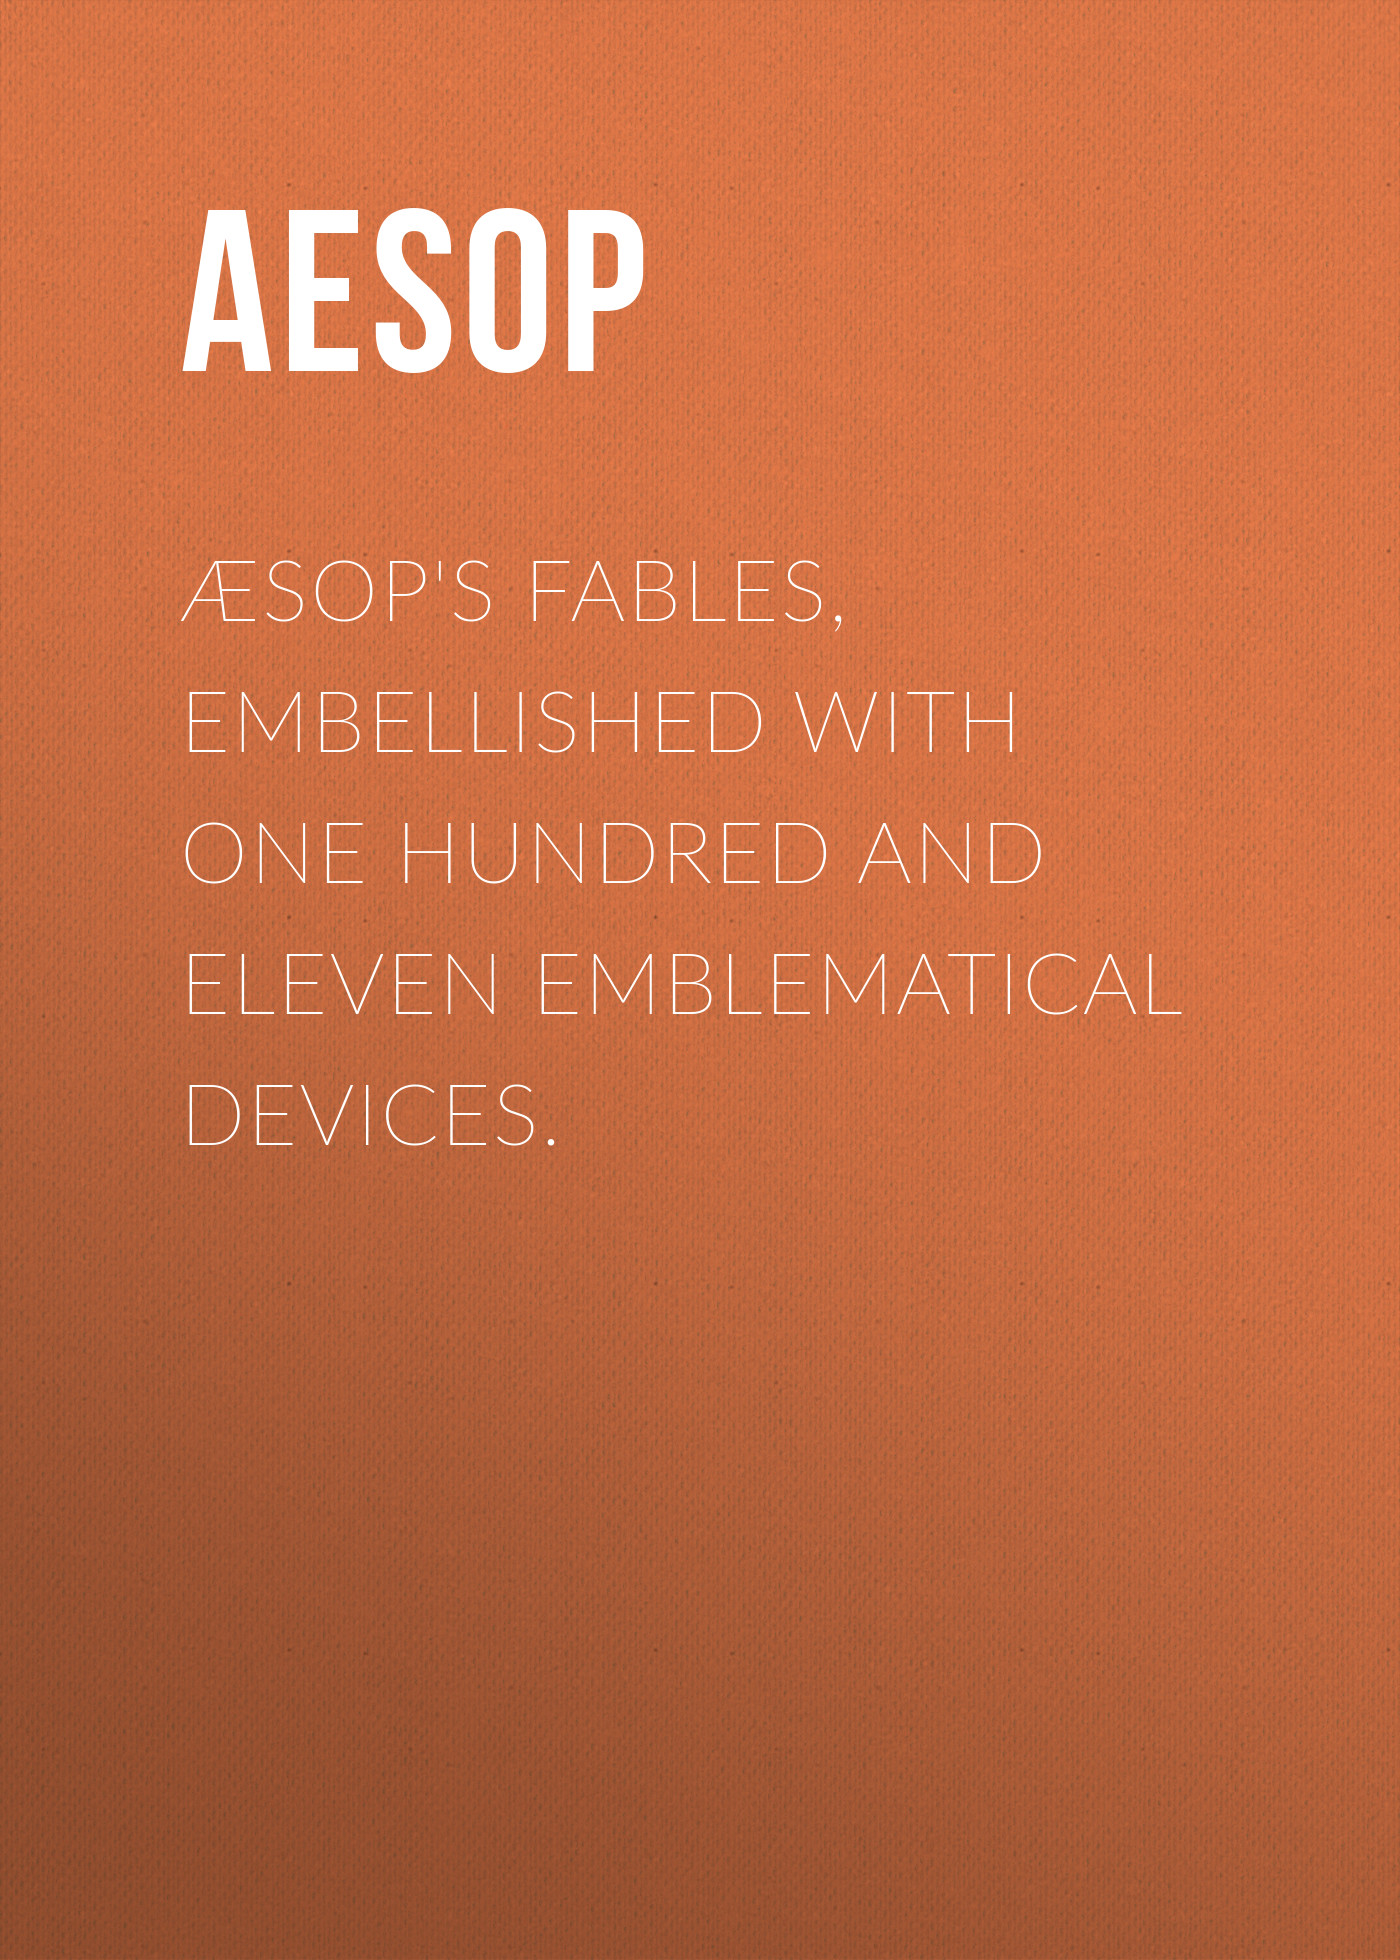 Æsop's Fables, Embellished with One Hundred and Eleven Emblematical Devices.